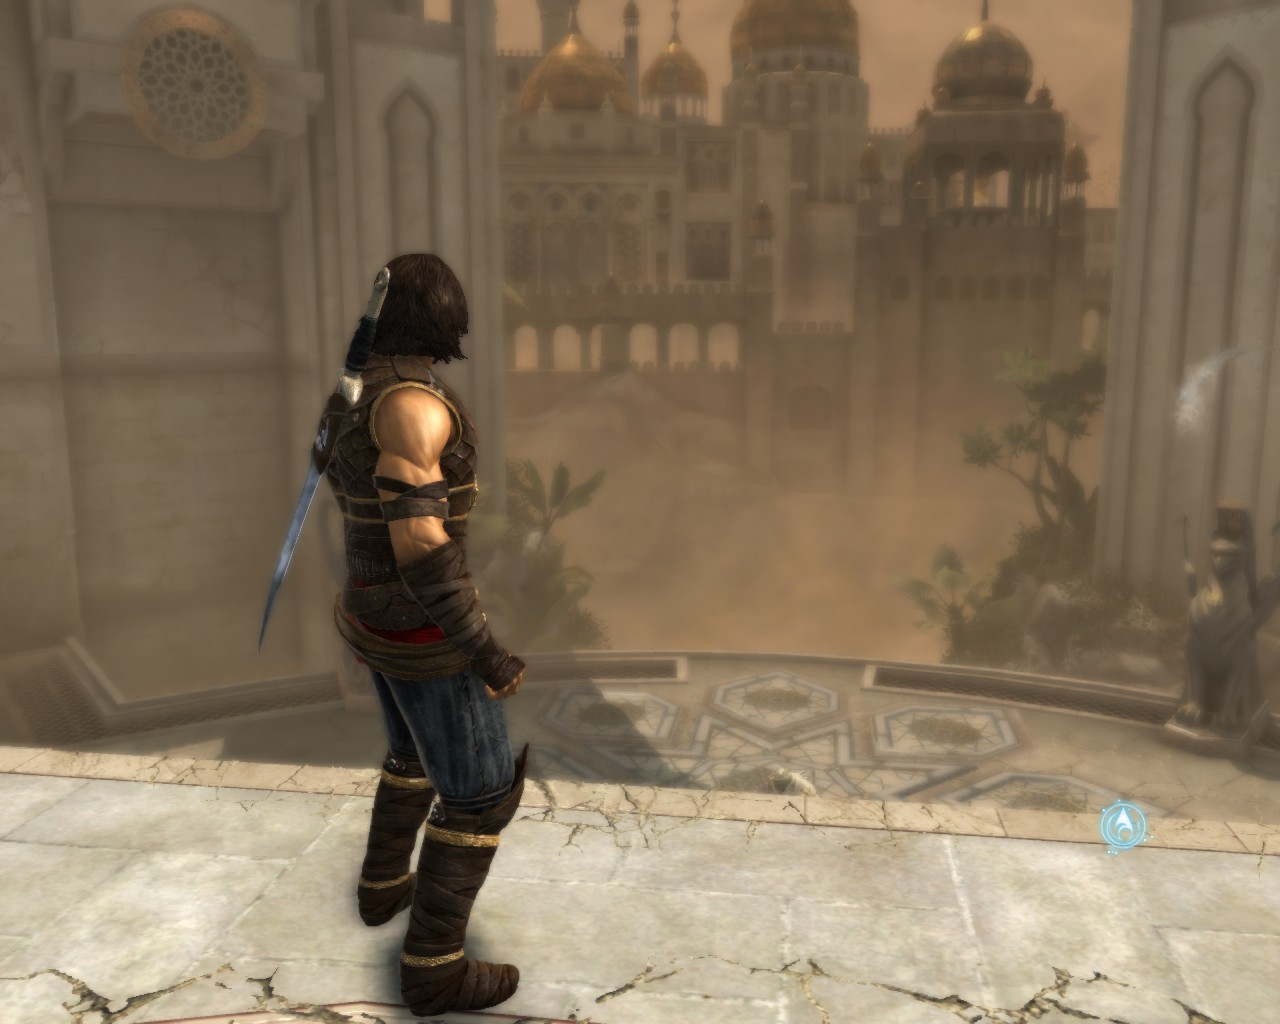 Prince of Persia 2014-06-03 22-58-27-99.jpg - Prince of Persia: The Forgotten Sands